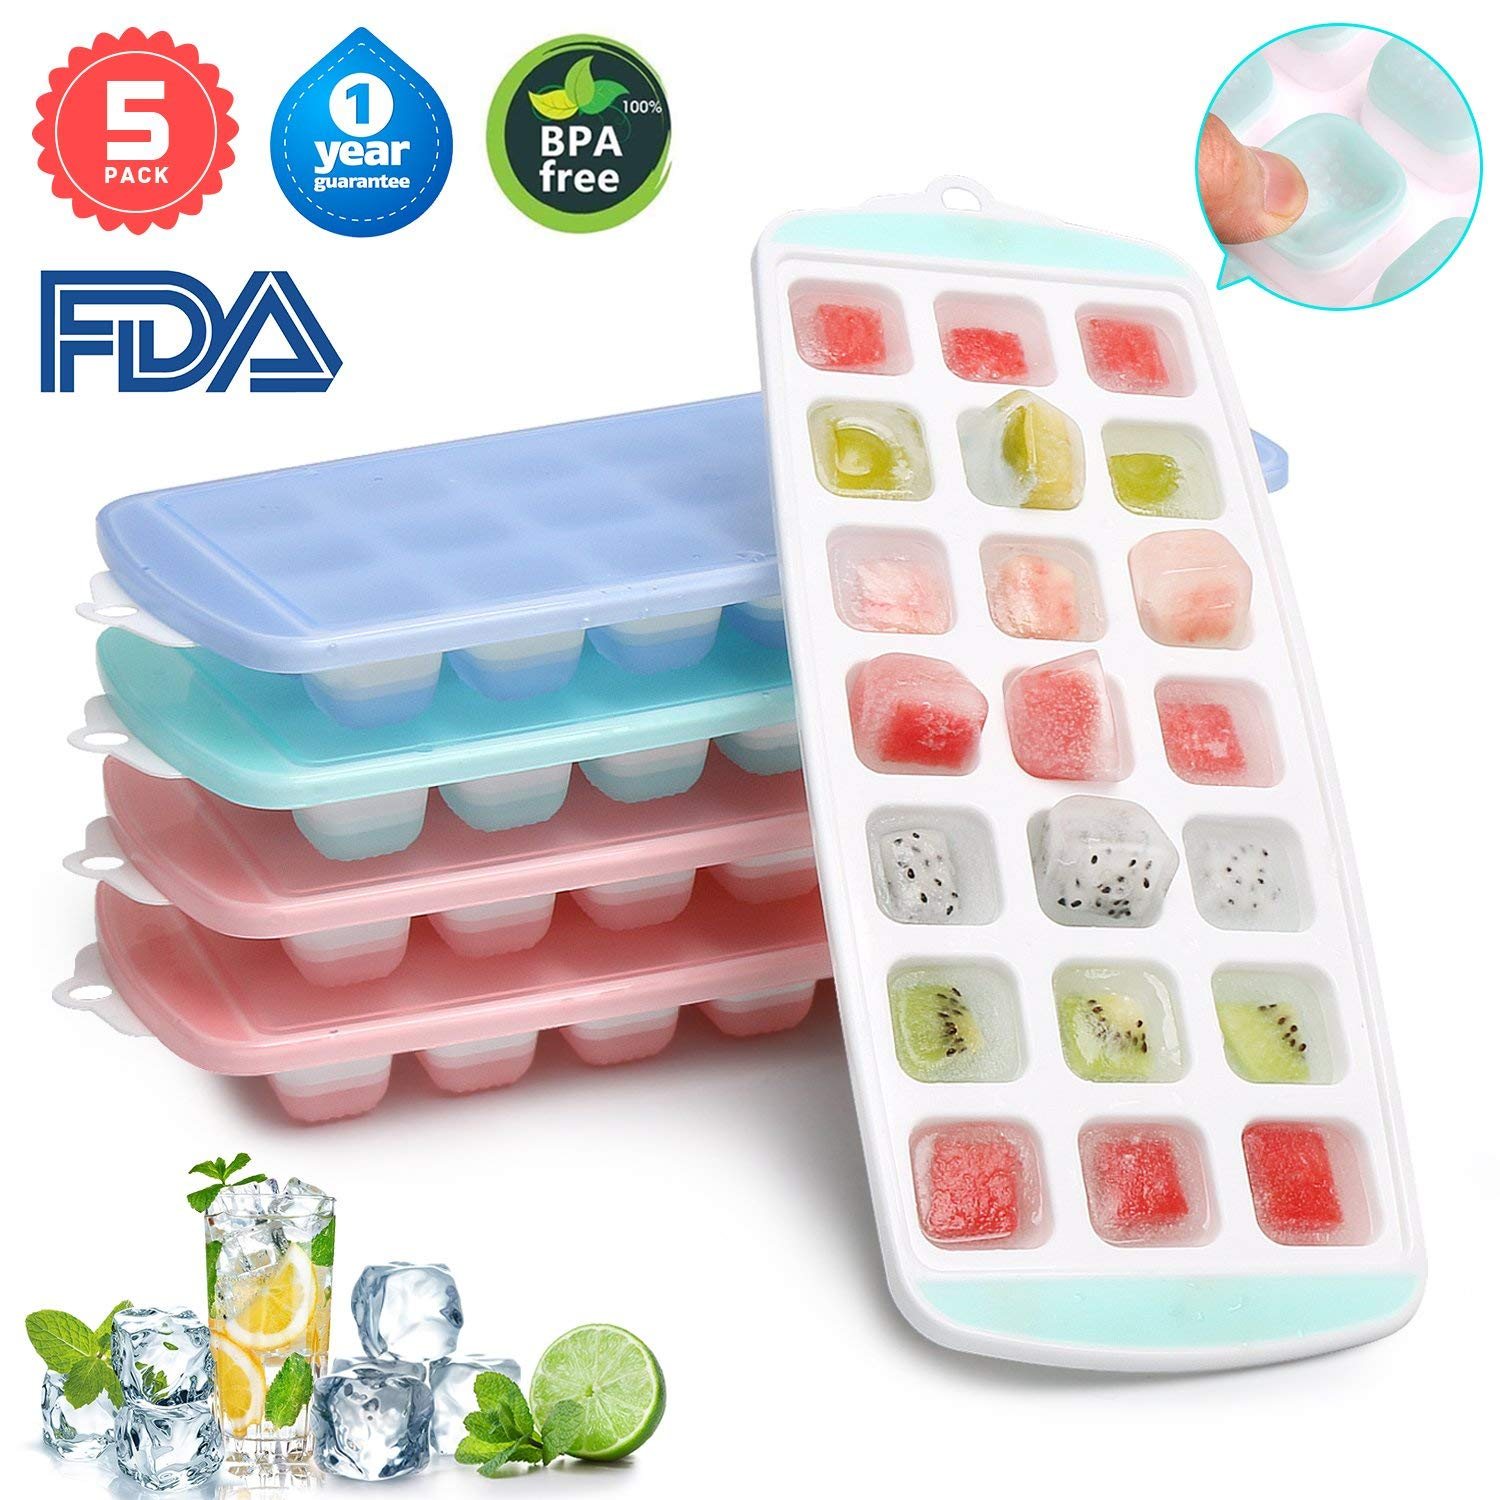 Ice Cube Trays, 5 Packs Food Grade Flexible Silicone Ice Cube Molds Tray with Lids, Easy Release Ice Trays Make 105 Ice Cube, Stackable Dishwasher Safe, BPA Free